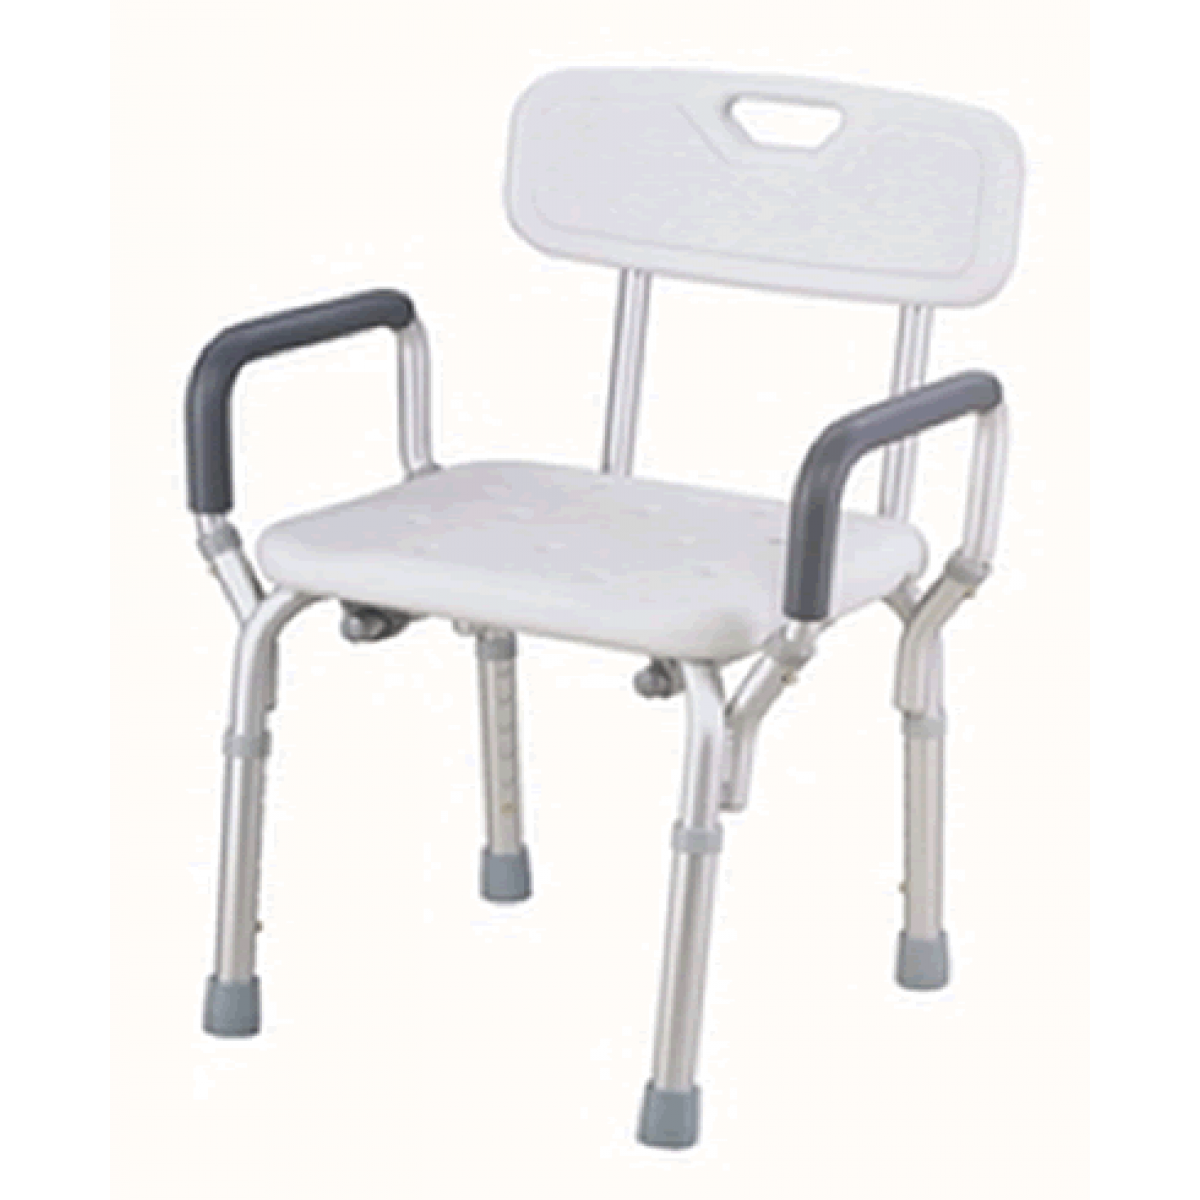 for hold image of with padded to up size deluxe handles bench opening benches disabled full elderlypadded shower lbspadded frightening seat ideas the commode